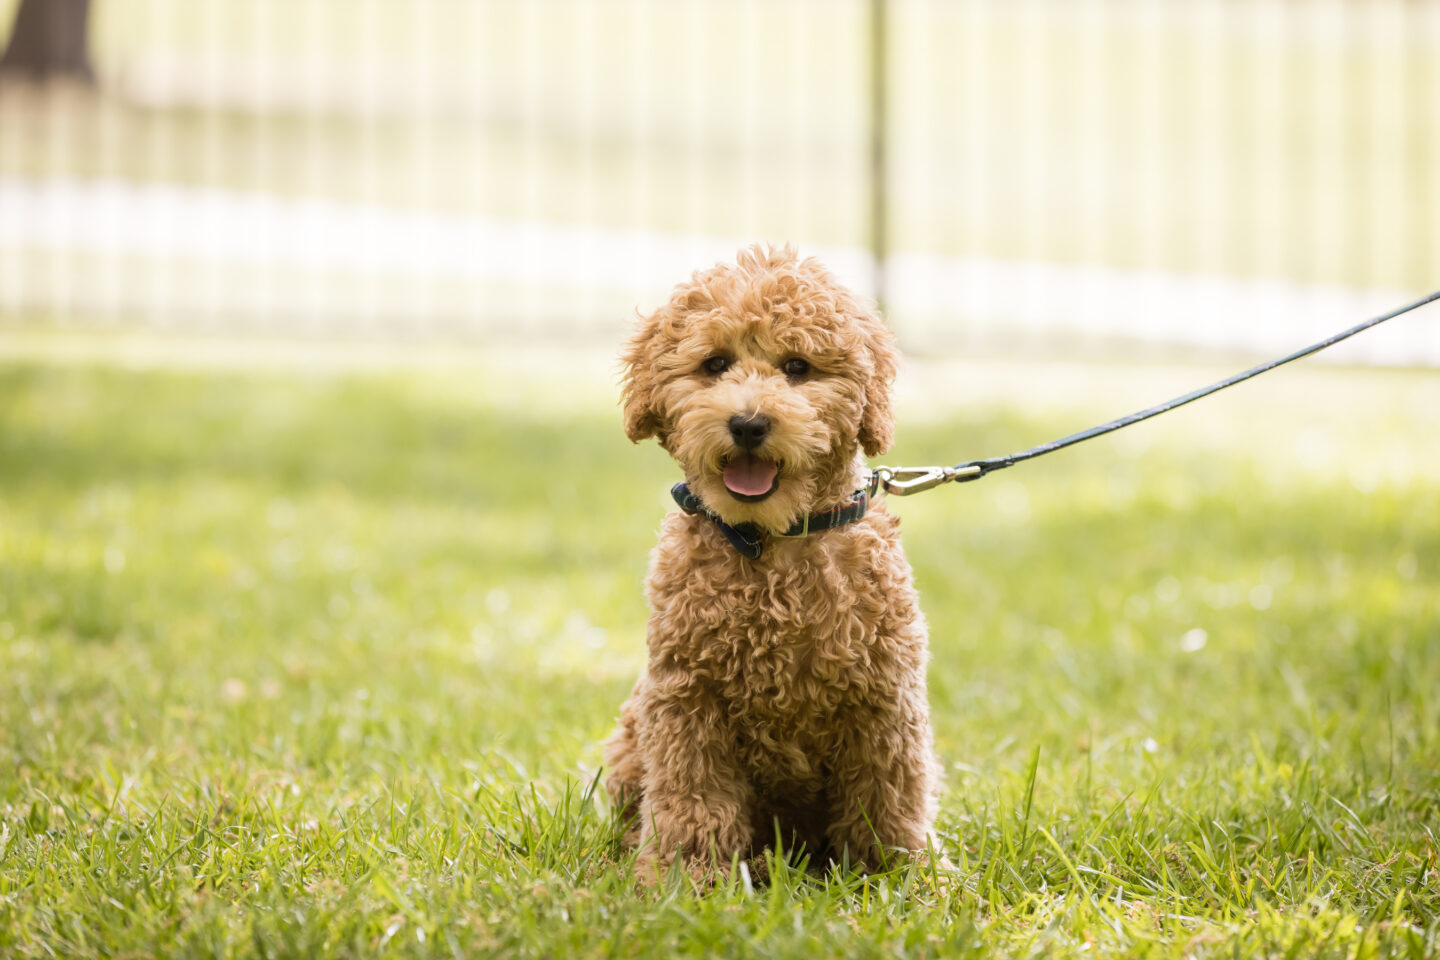 Goldendoodle puppy |Charlie Cupcake by popular Dallas lifestyle blog, Pretty Little Shoppers: image of a goldendoodle puppy.